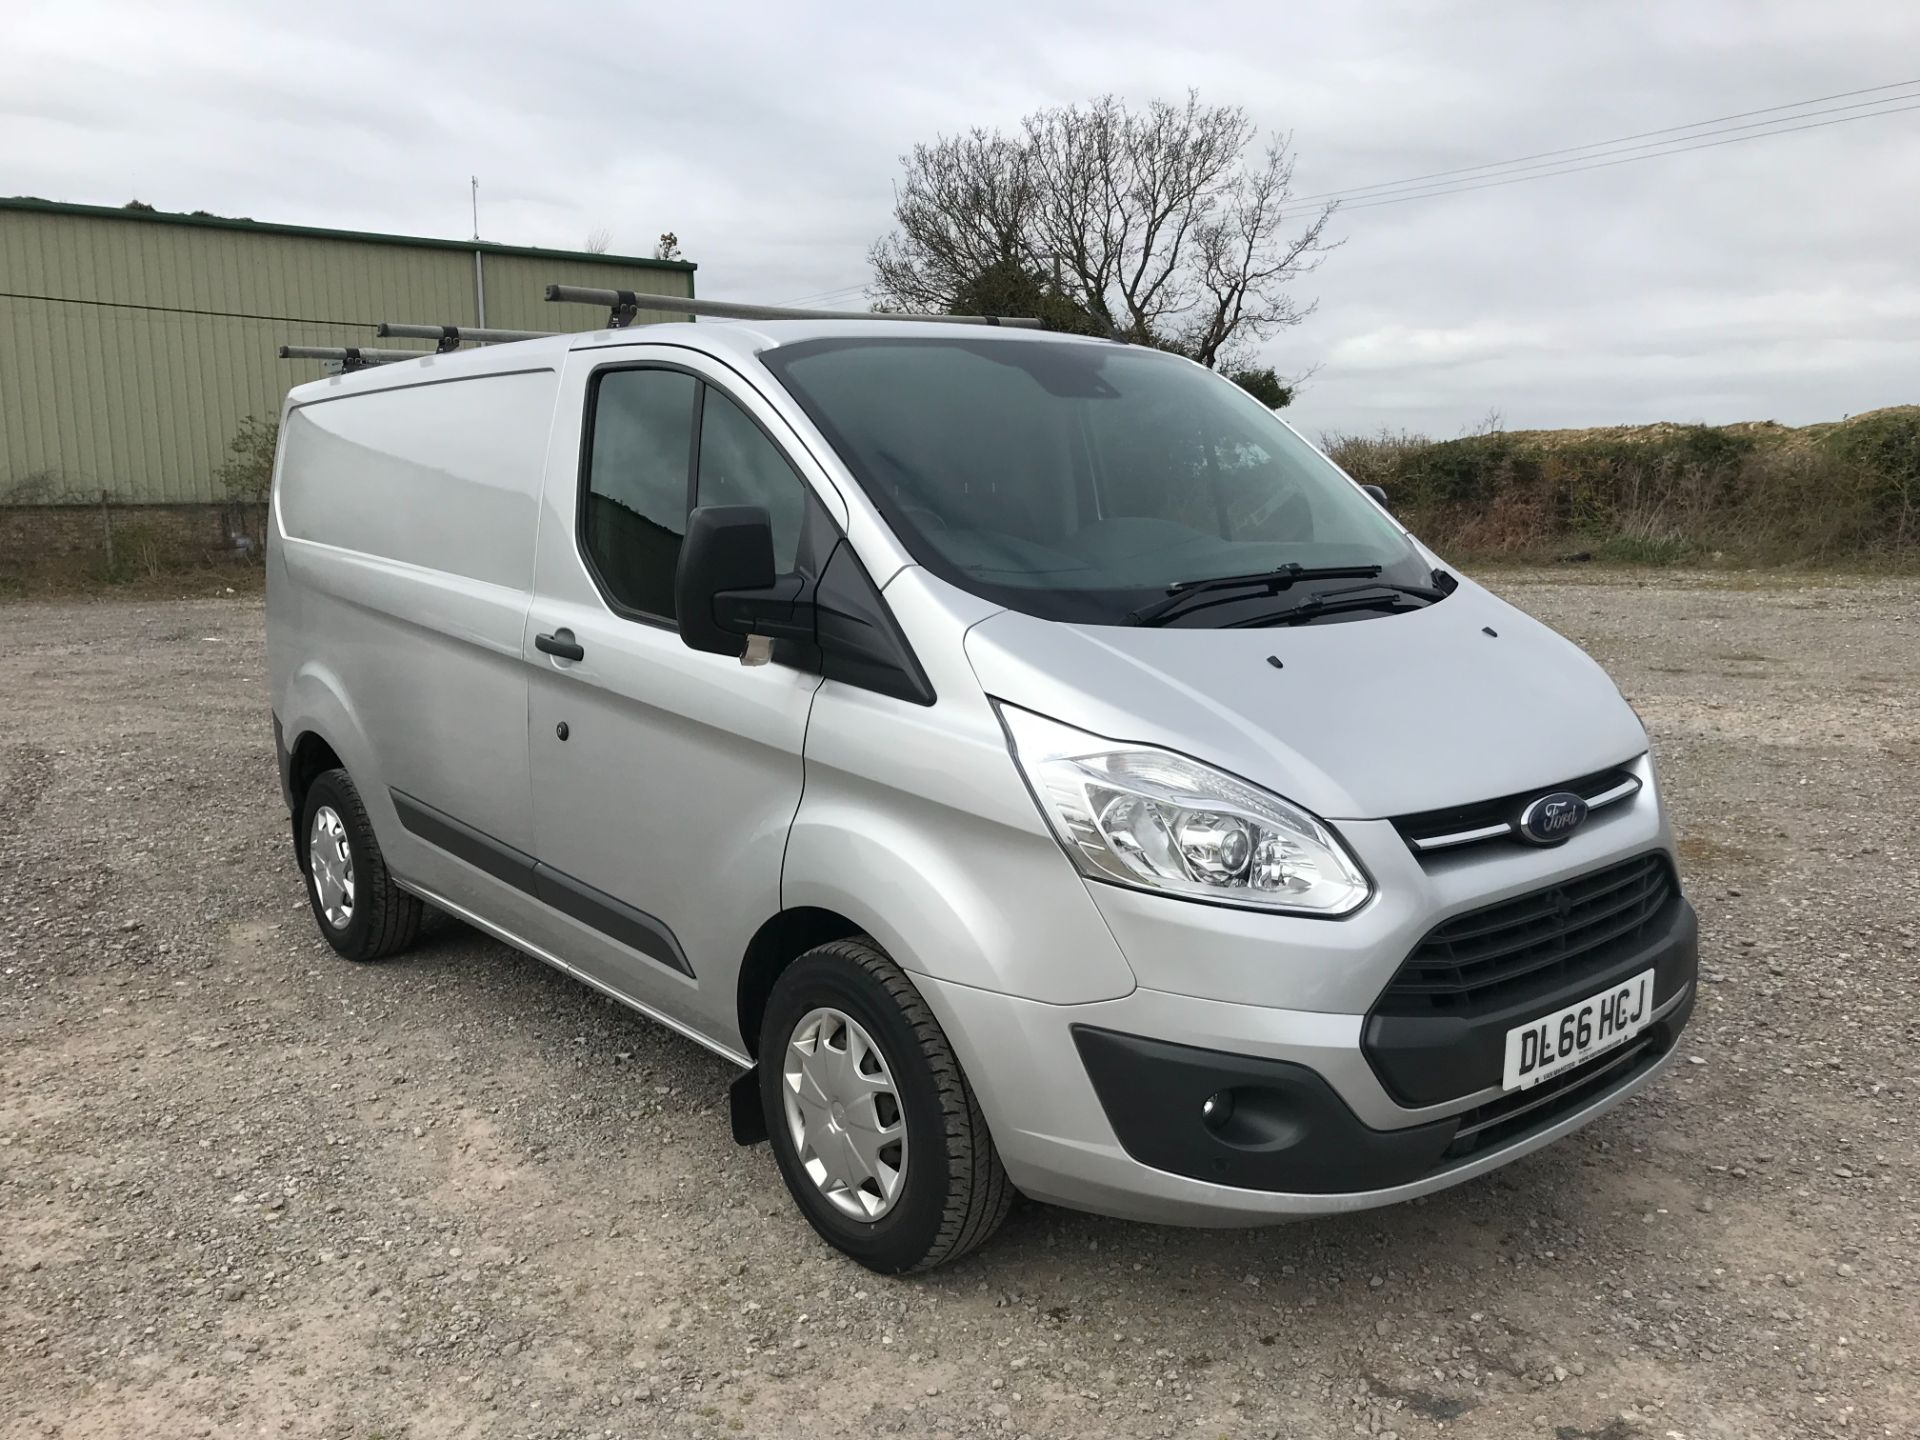 2016 Ford Transit Custom 270 L1 DIESEL FWD 2.0 TDCI 130PS LOW ROOF TREND VAN EURO 6 (DL66HCJ)